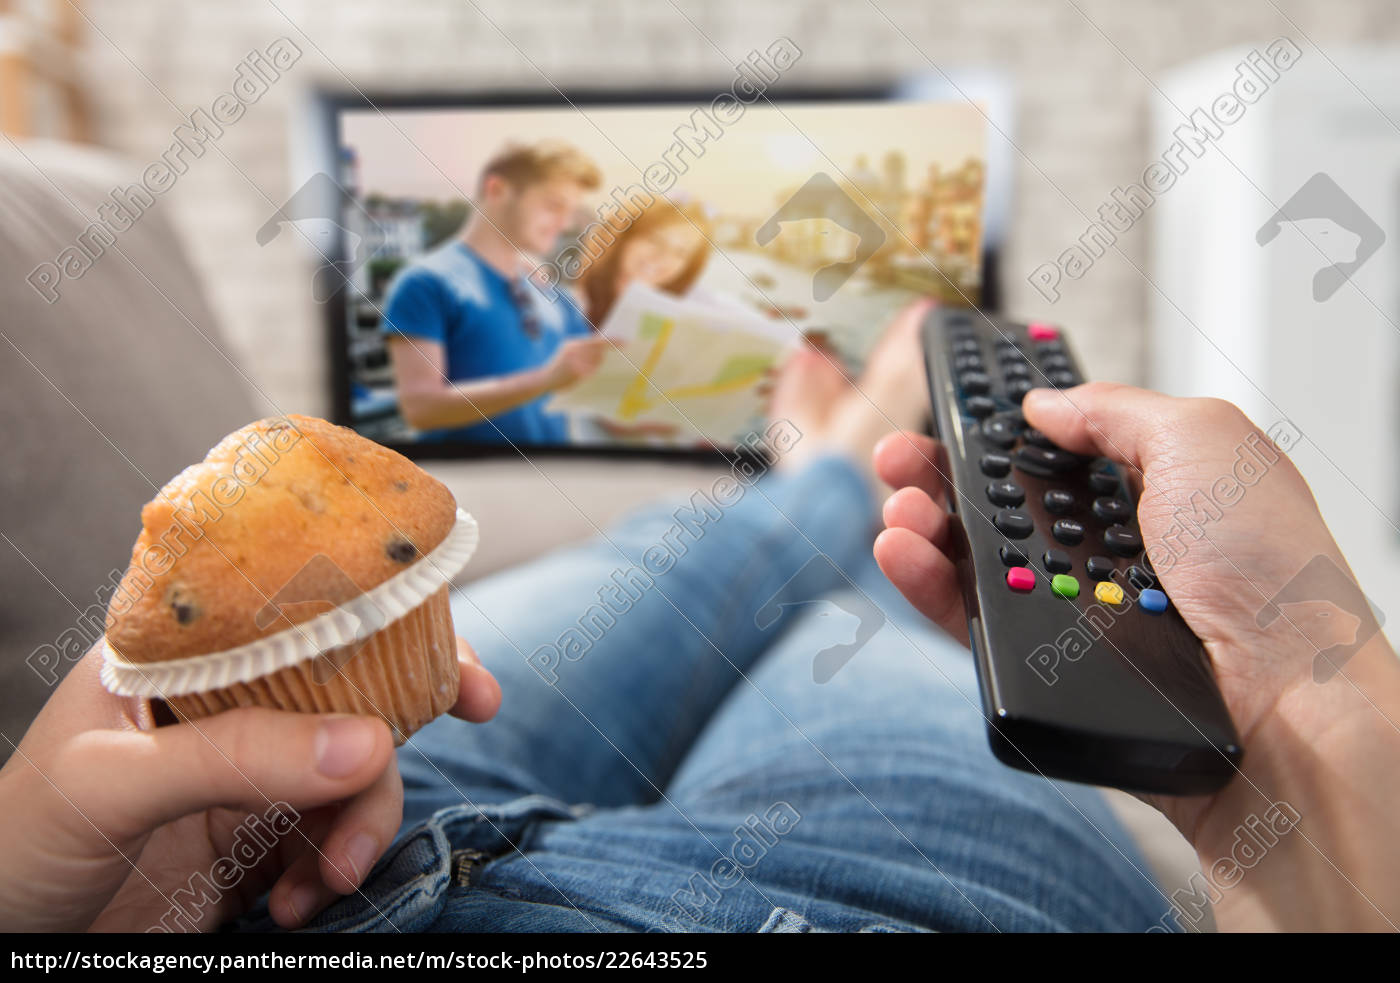 woman, holding, cupcake, and, remote, control - 22643525